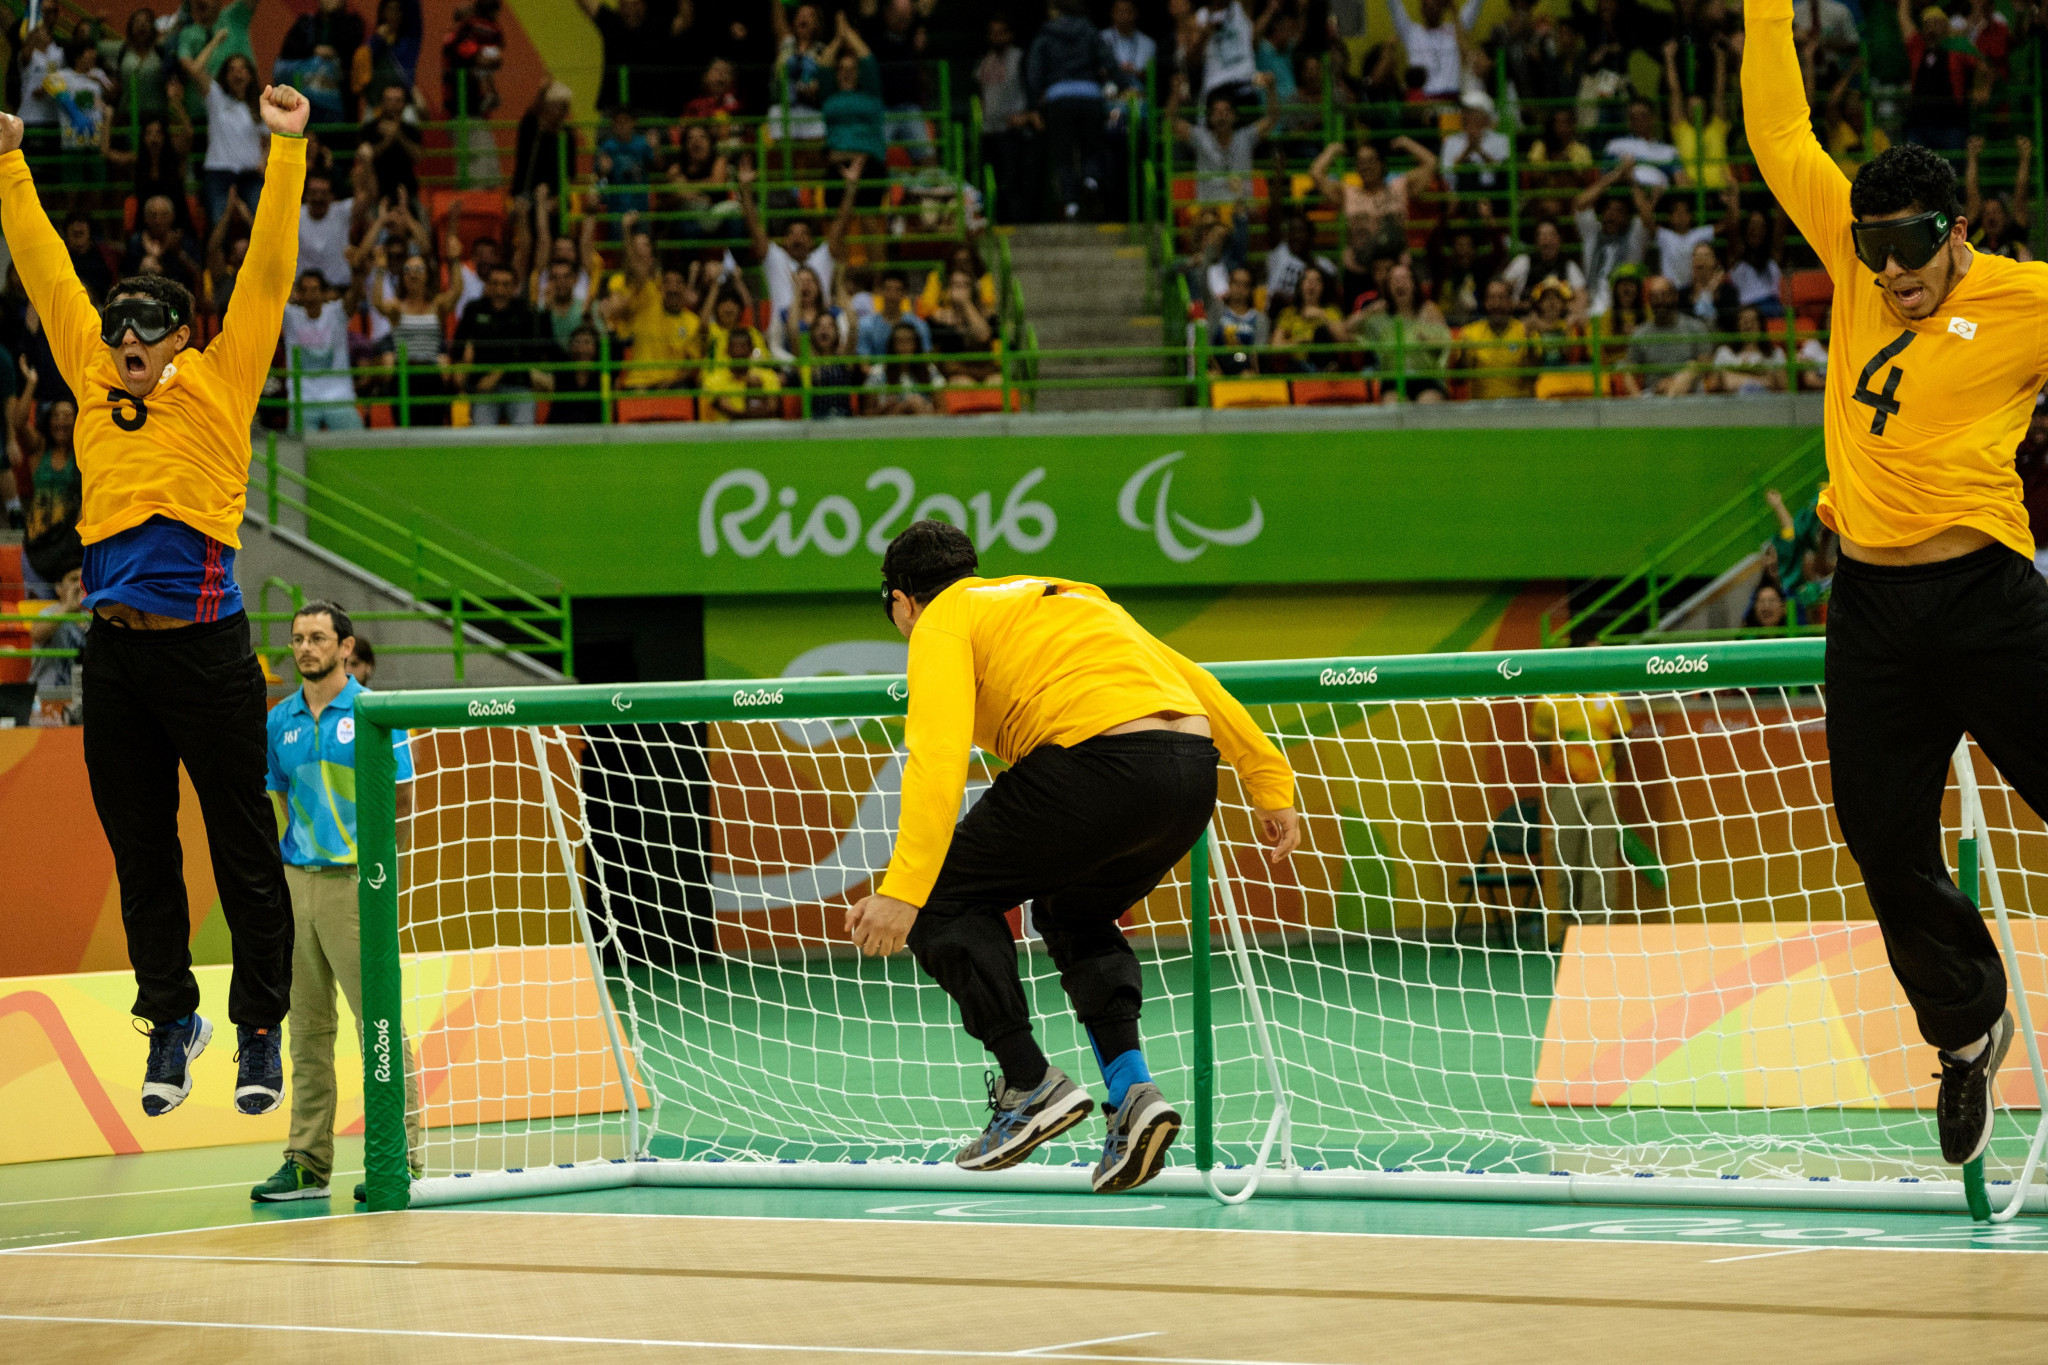 IBSA Goalball Committee regional representative Carla Da Mata claimed the Rio 2016 Paralympic Games helped the development of goalball in the Americas ©Getty Images